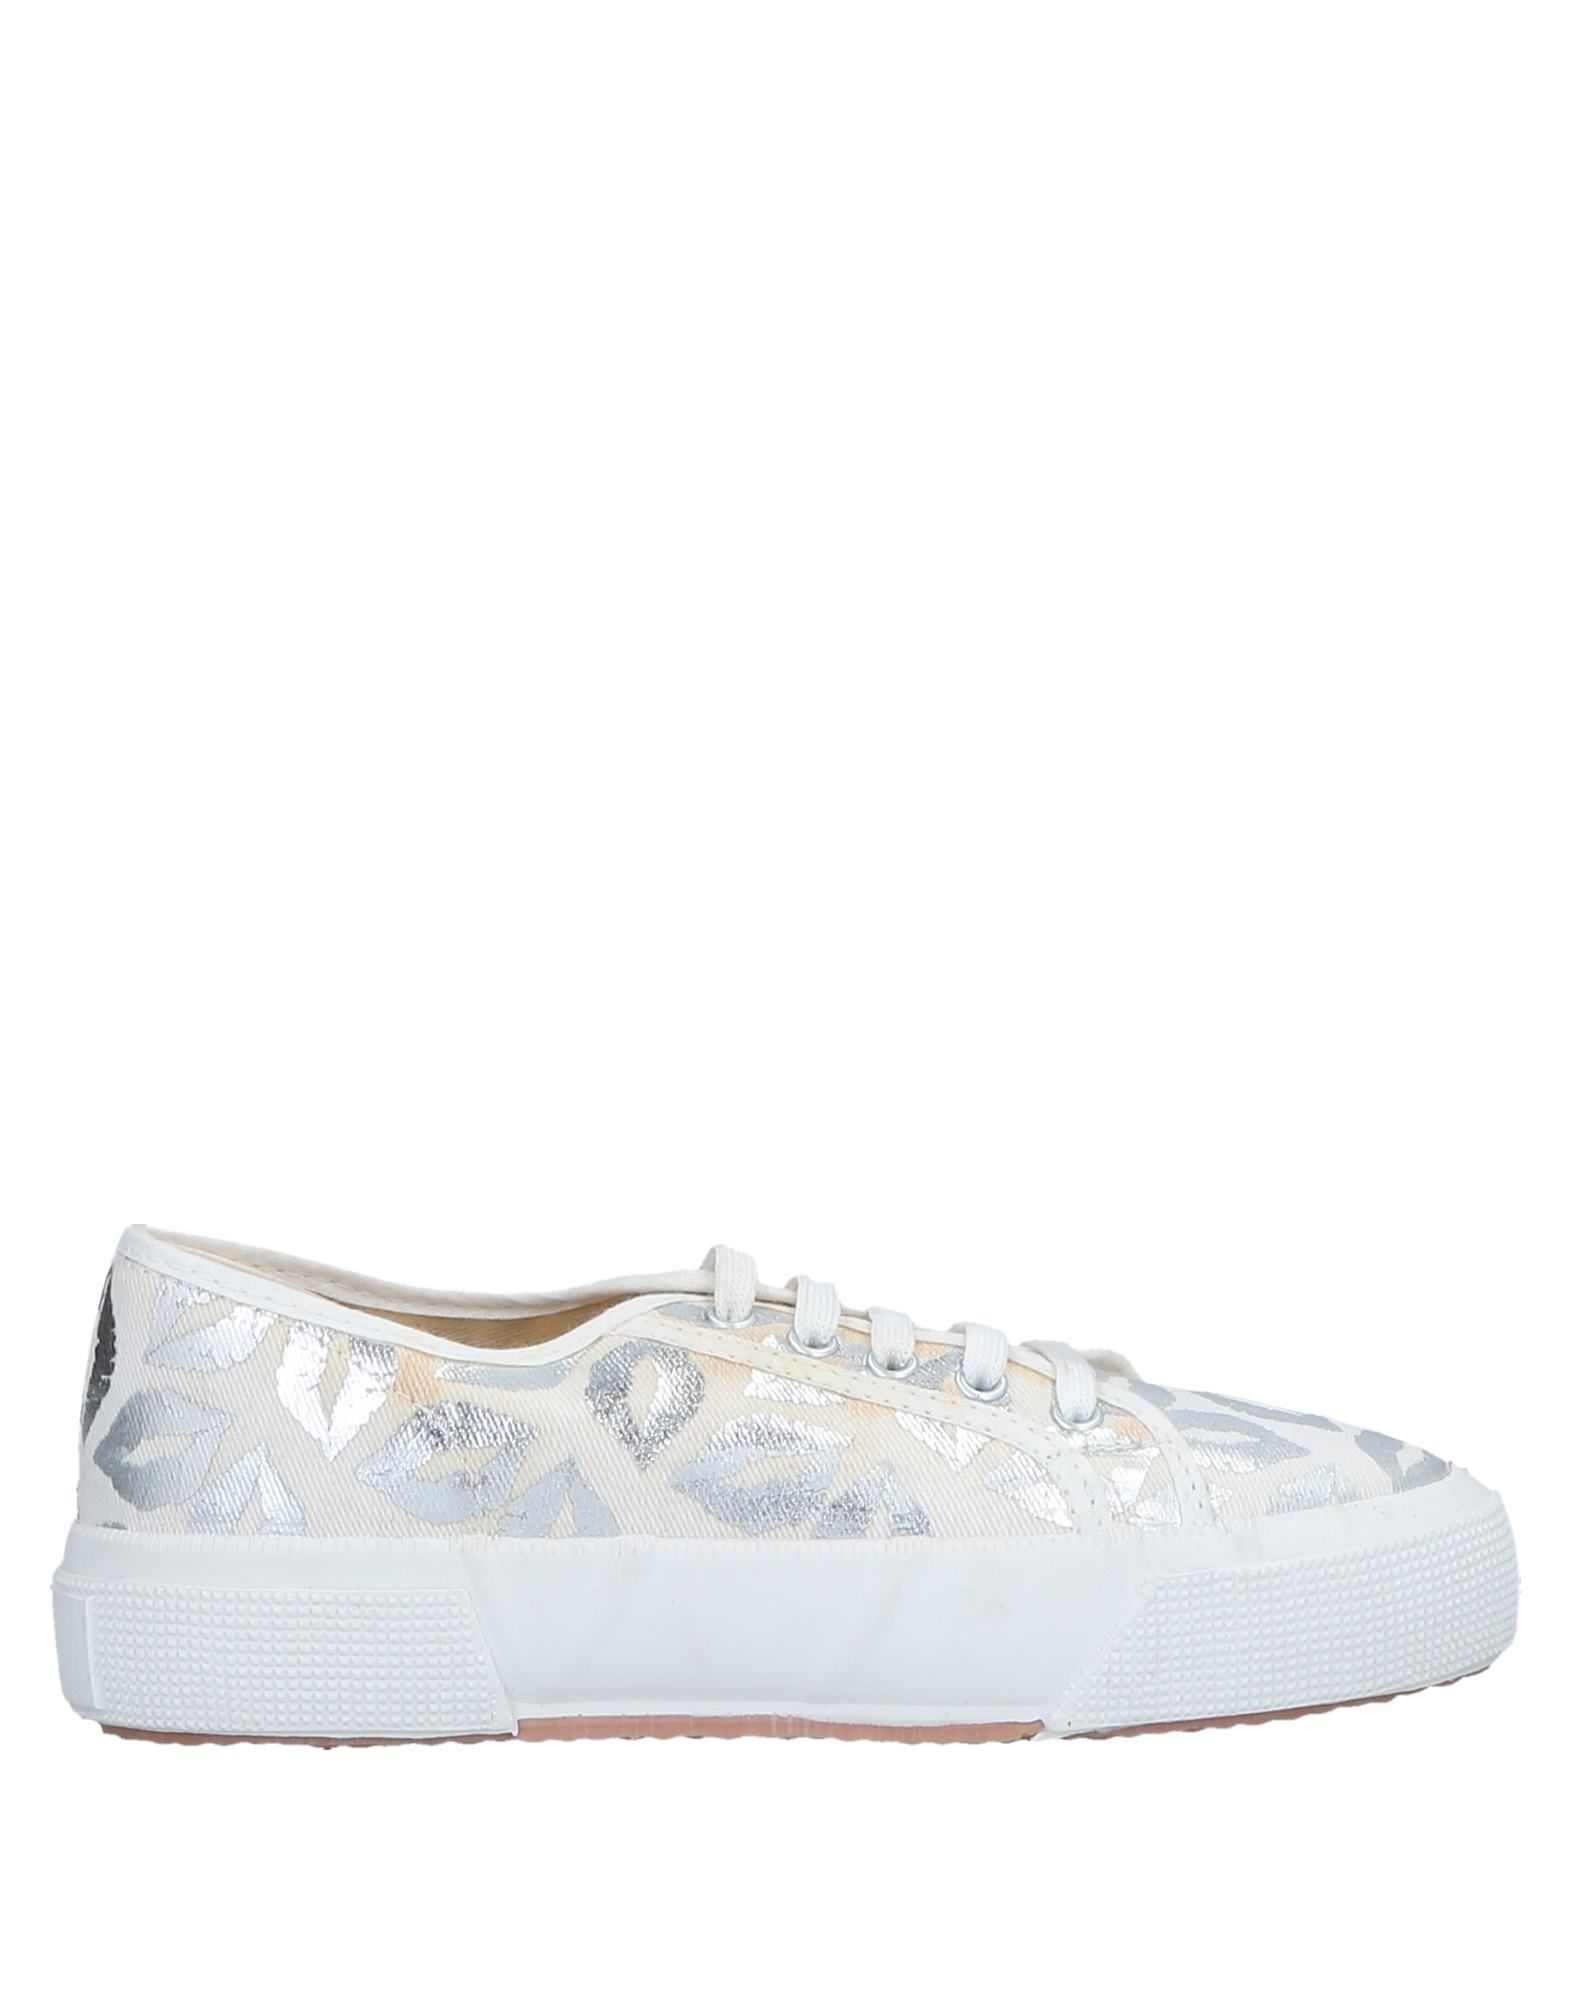 Scarpe da Ginnastica People For 11521616IW Happiness Donna - 11521616IW For 1377df